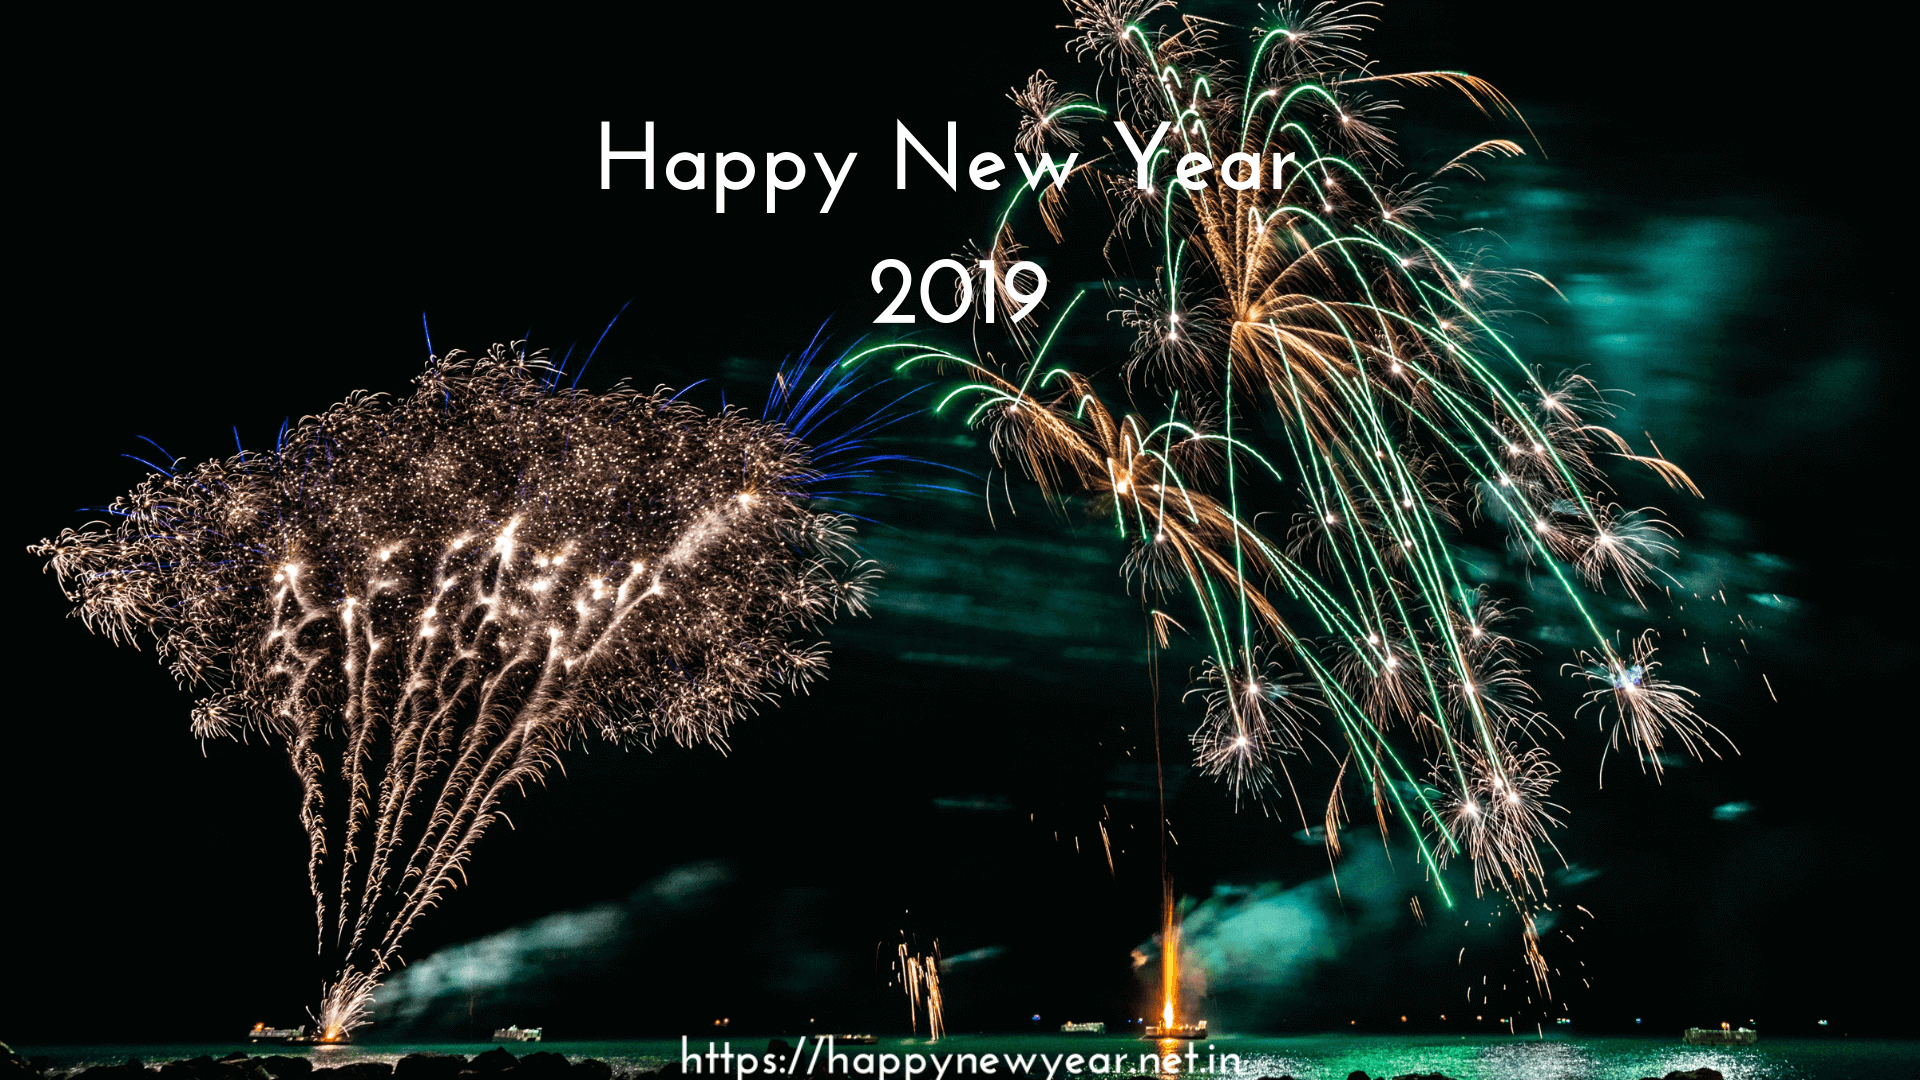 Happy New Year Images 2019 Download Happy New Year - Happy New Year Gifs 2019 , HD Wallpaper & Backgrounds